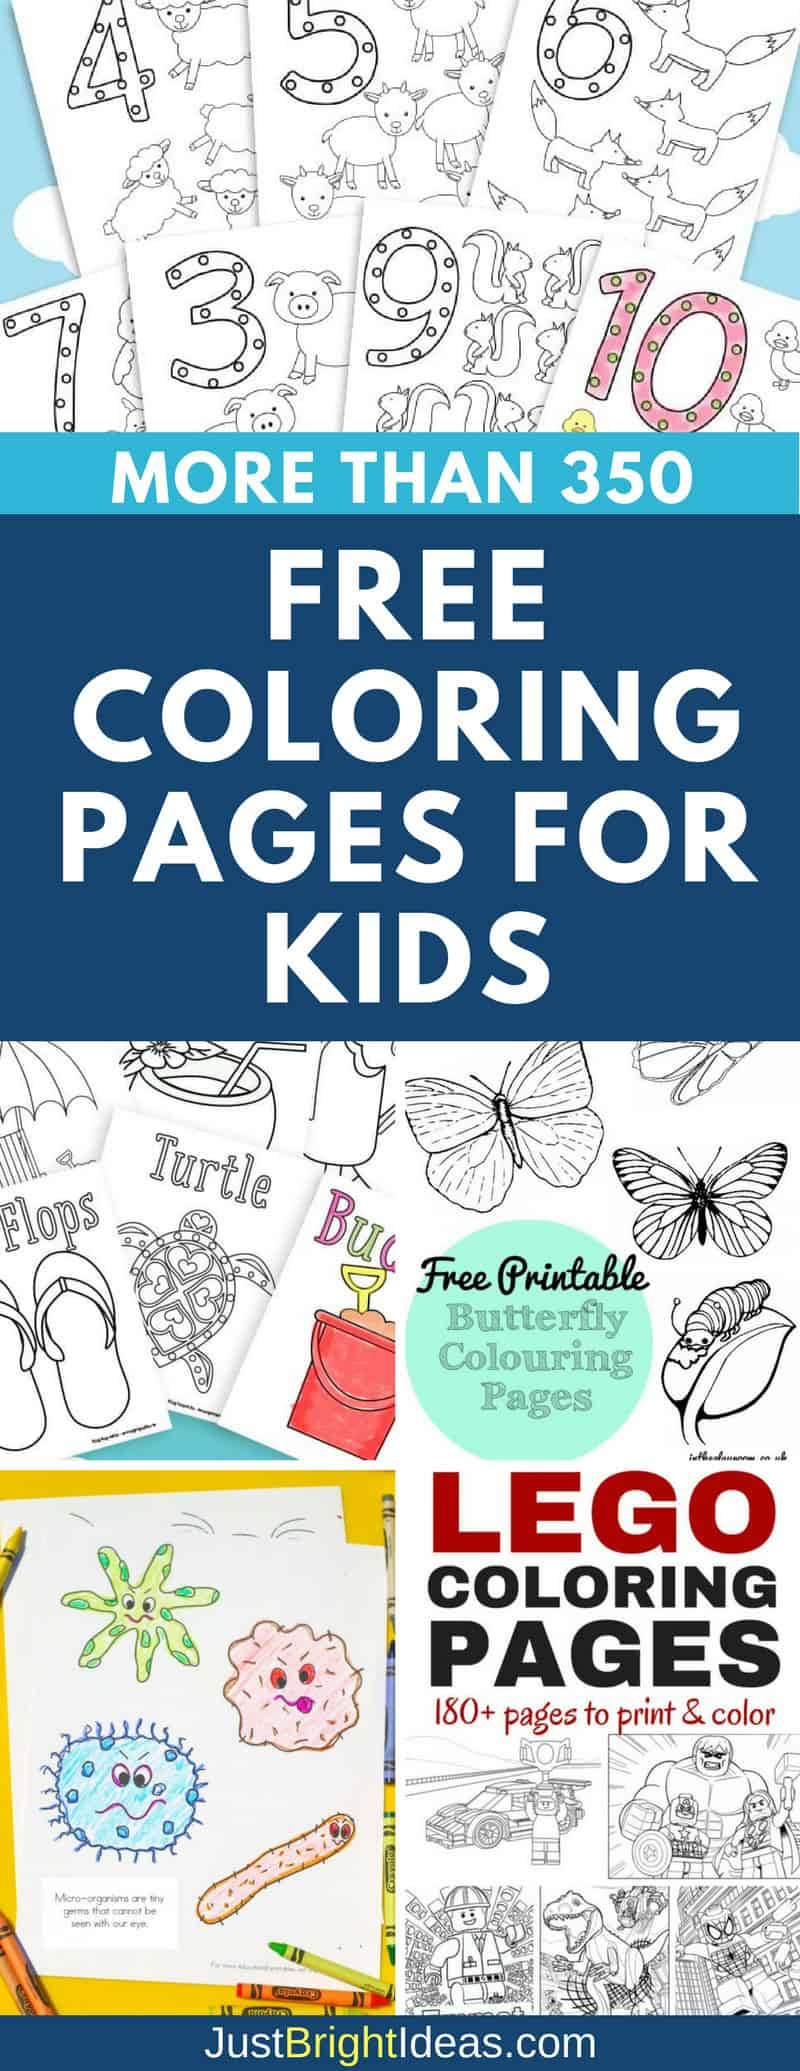 350+ Free Coloring Pages for Kids to Color When They\'re Bored!